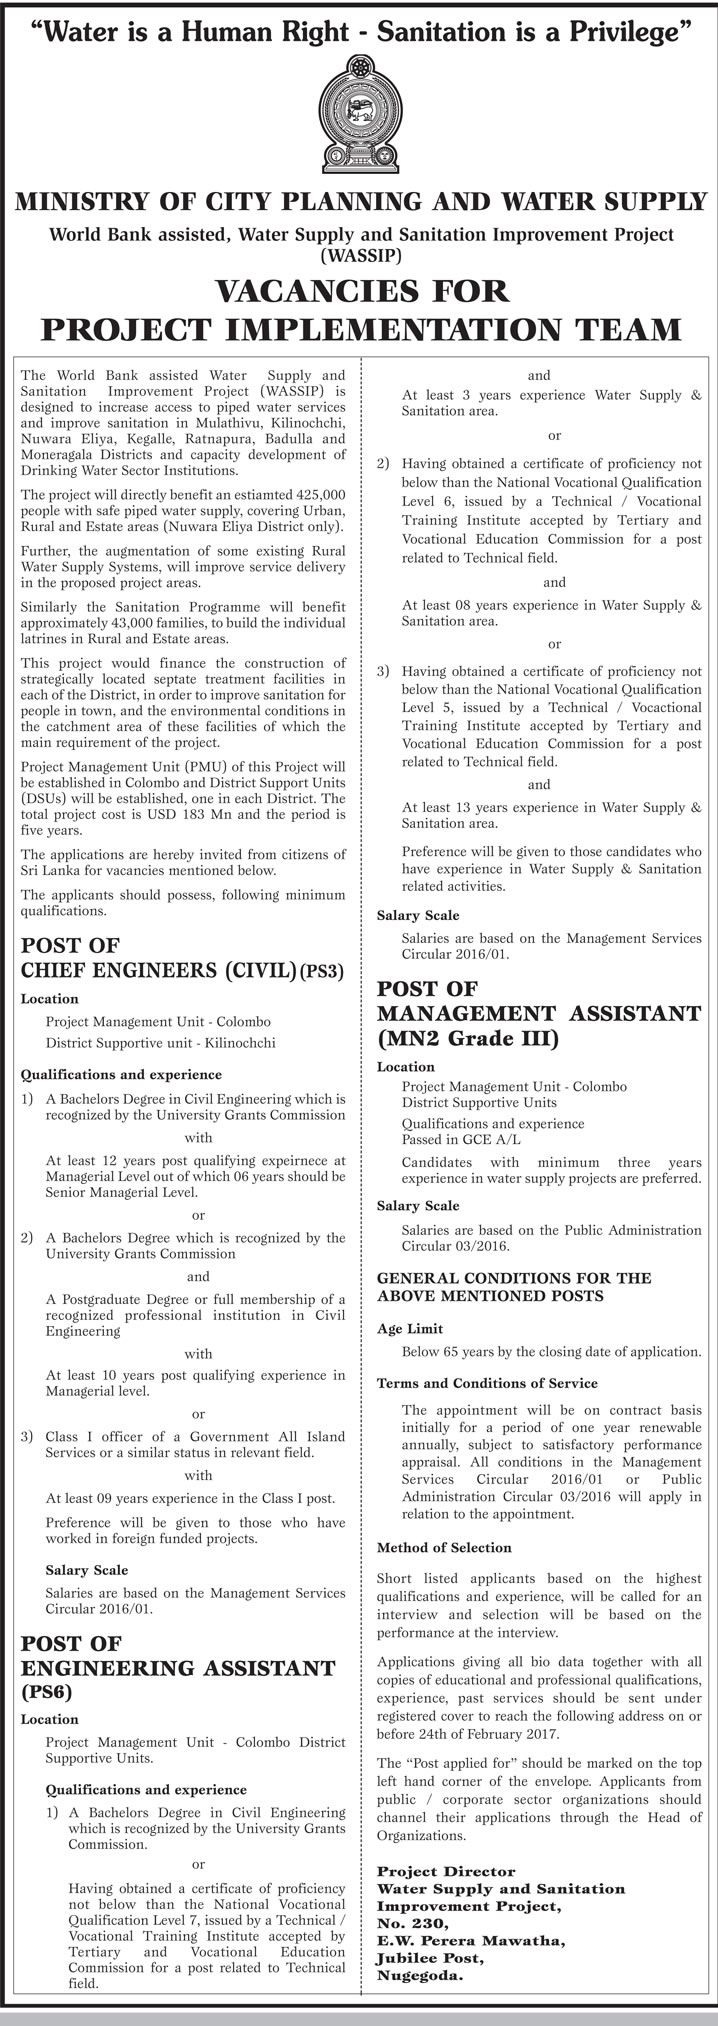 Chief Engineer Civil Engineering Assistant Management